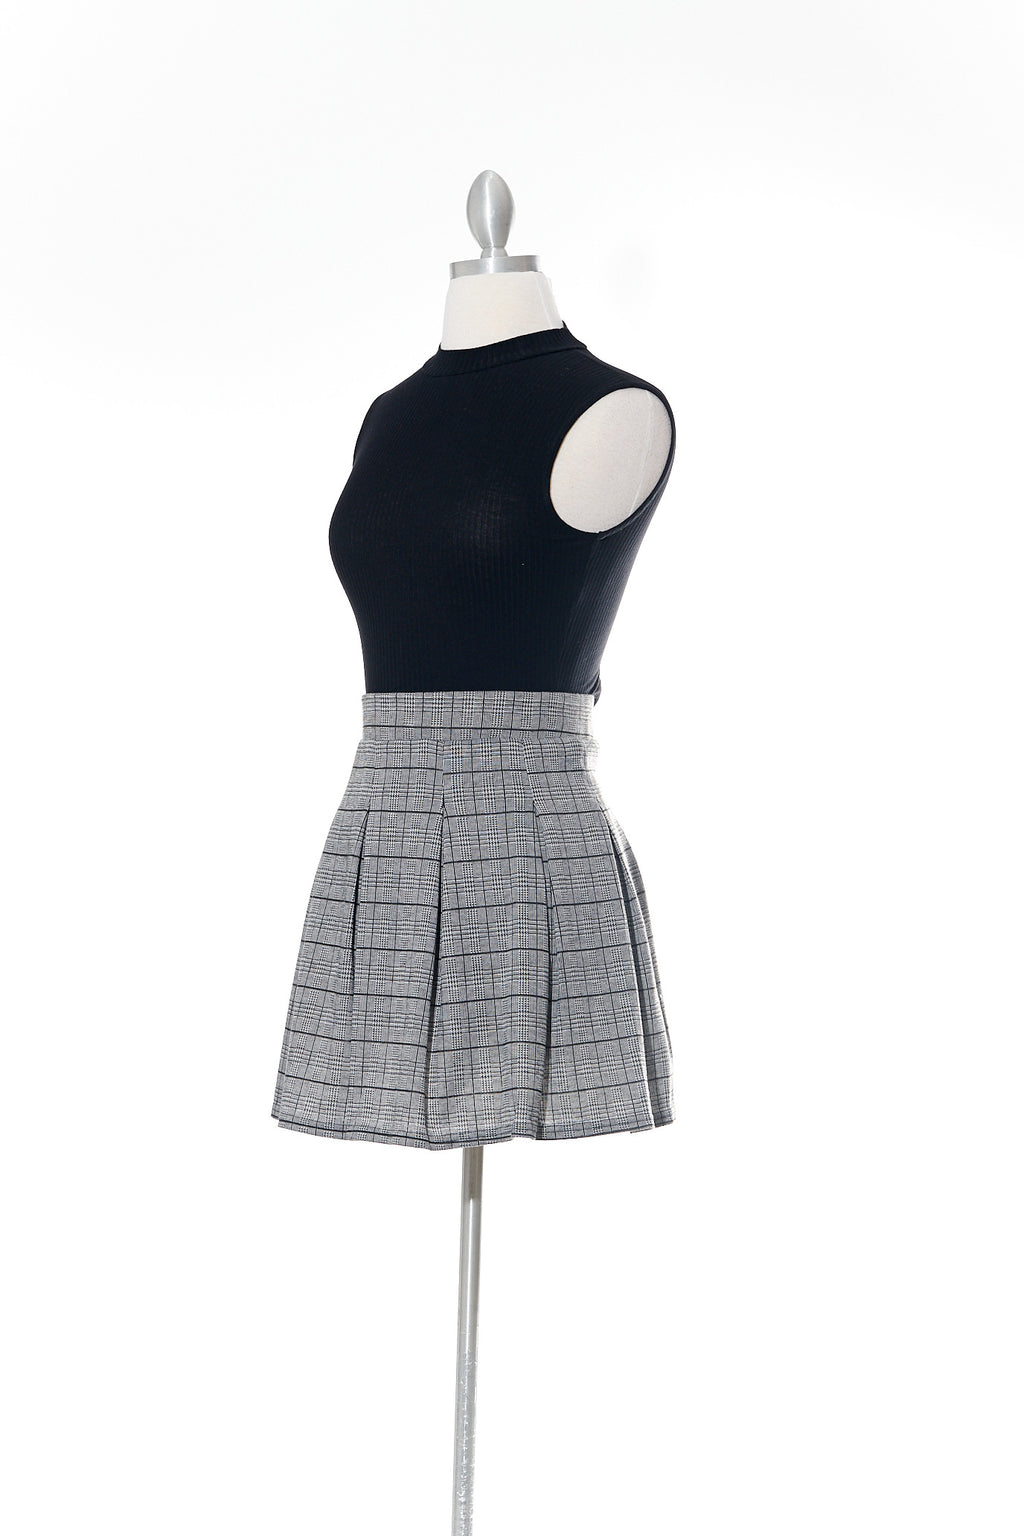 The Preppy Skirt